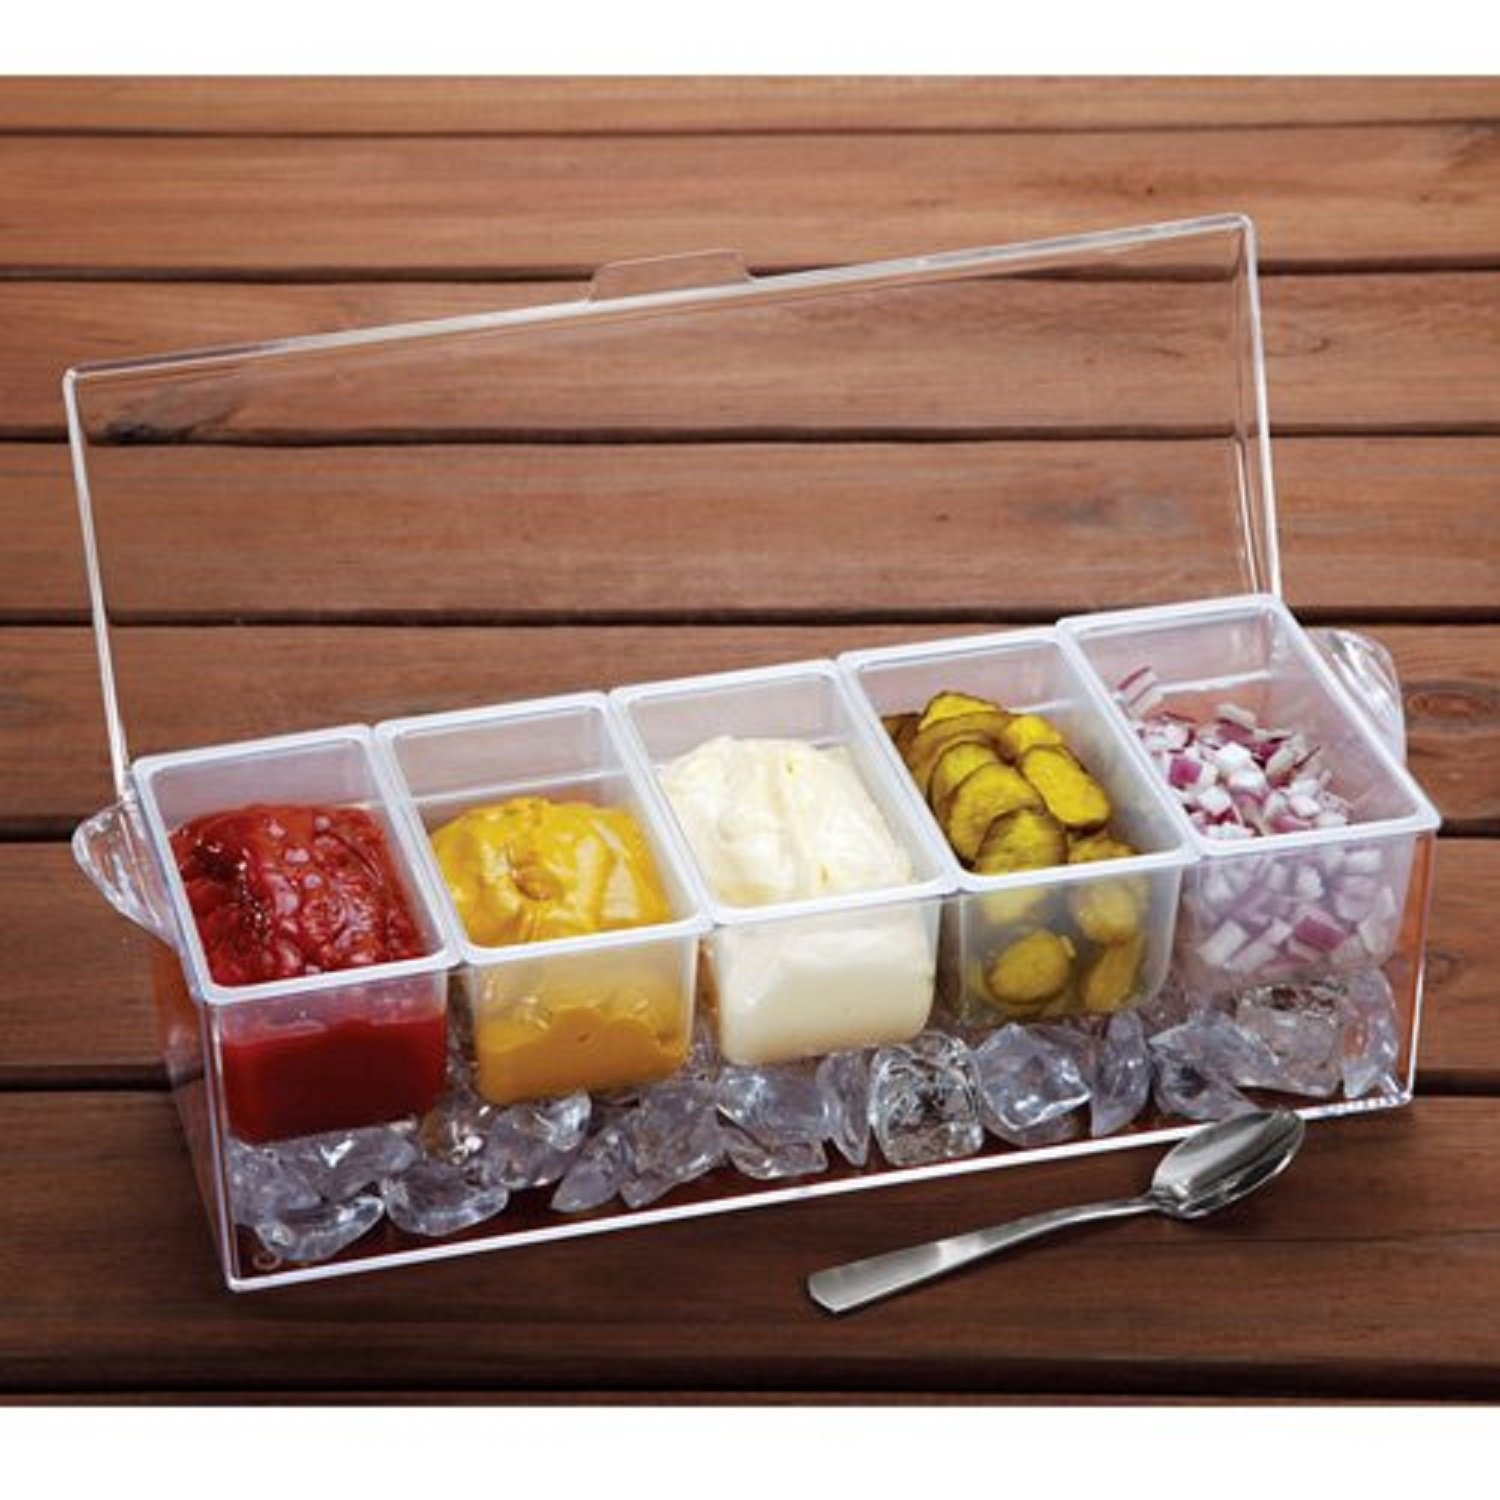 Chilled Condiment Server by Jumbl